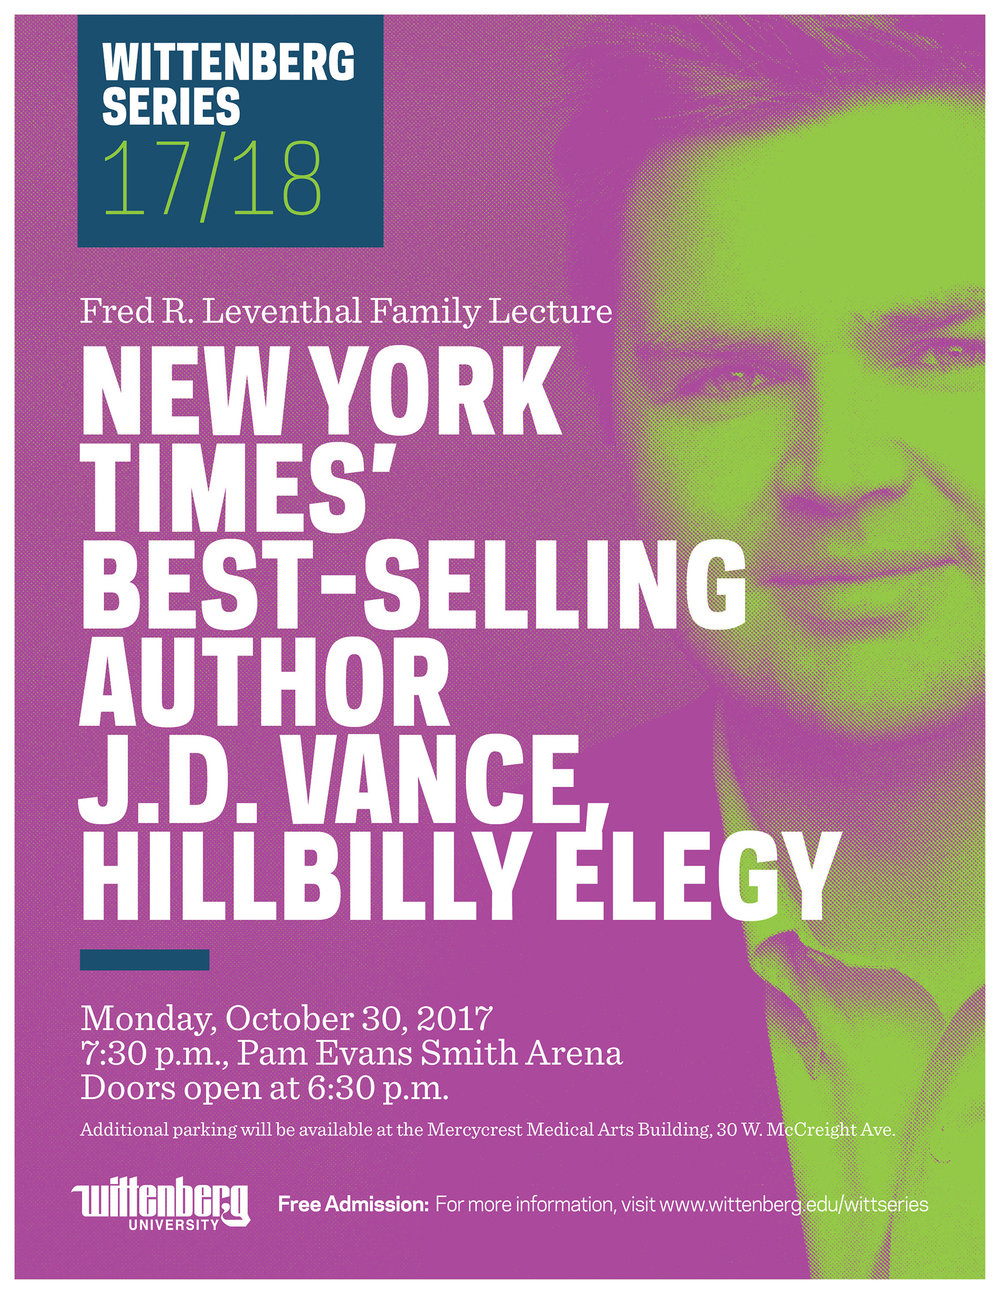 WITT SERIES JD VANCE FLYER.jpg